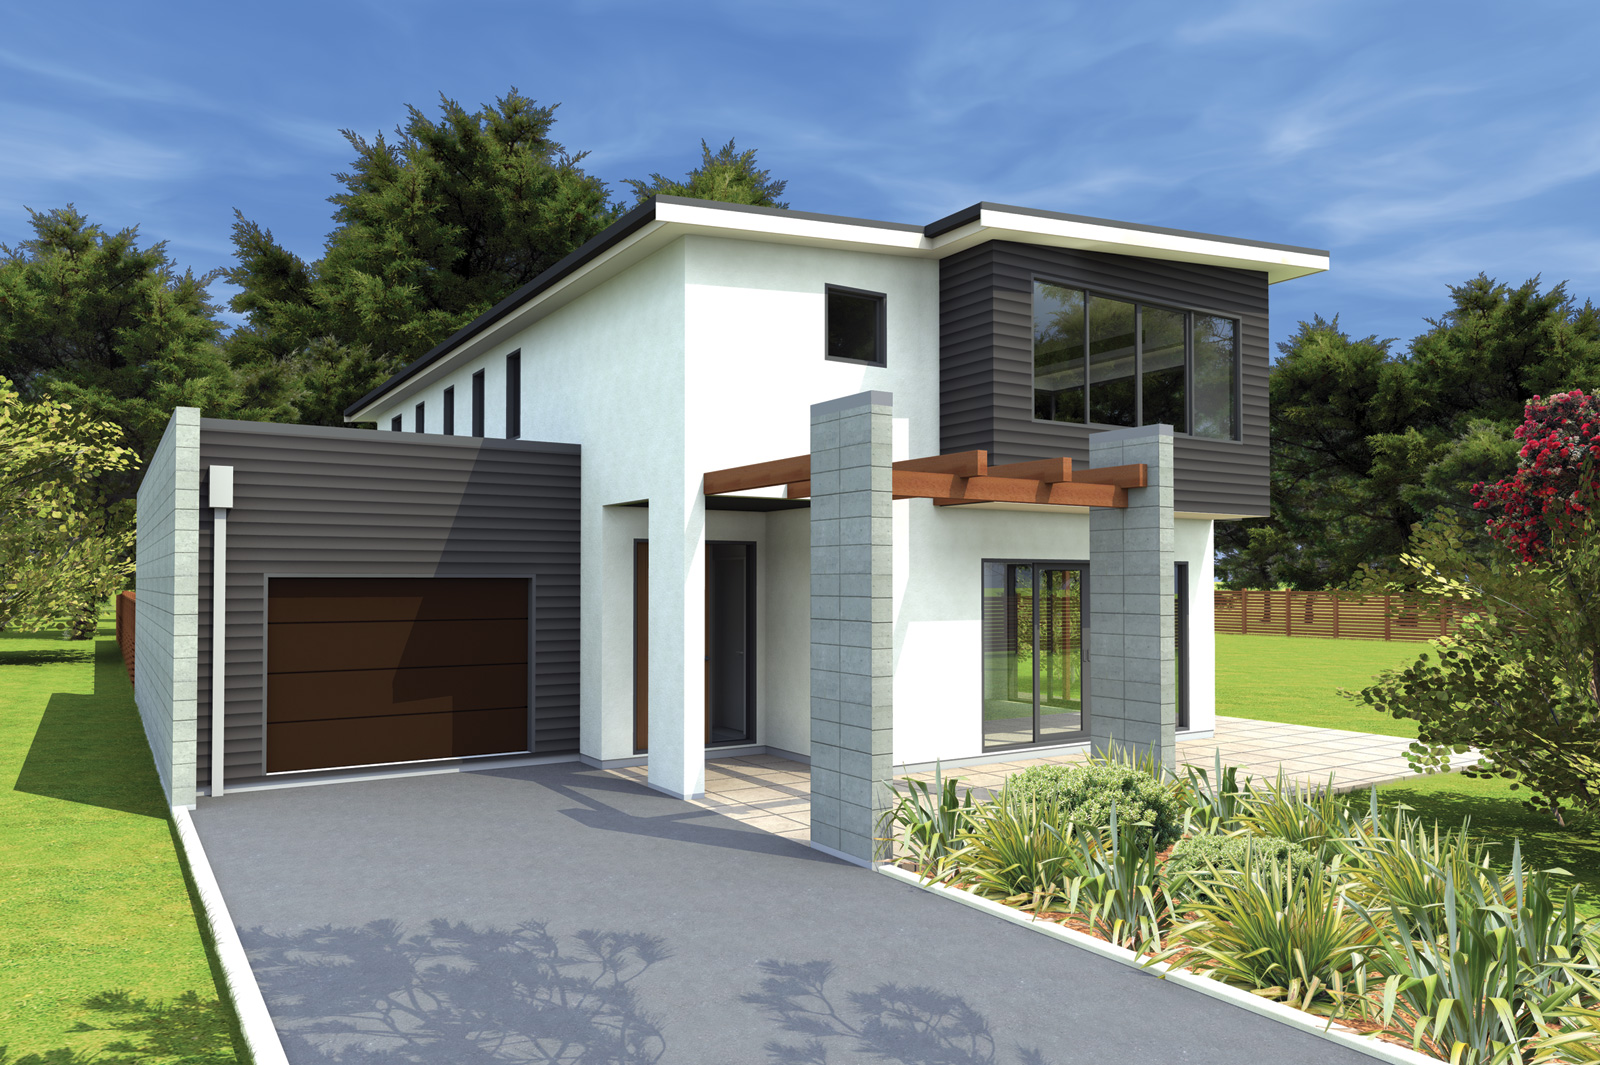 New home designs latest new modern homes designs new Modern home building plans